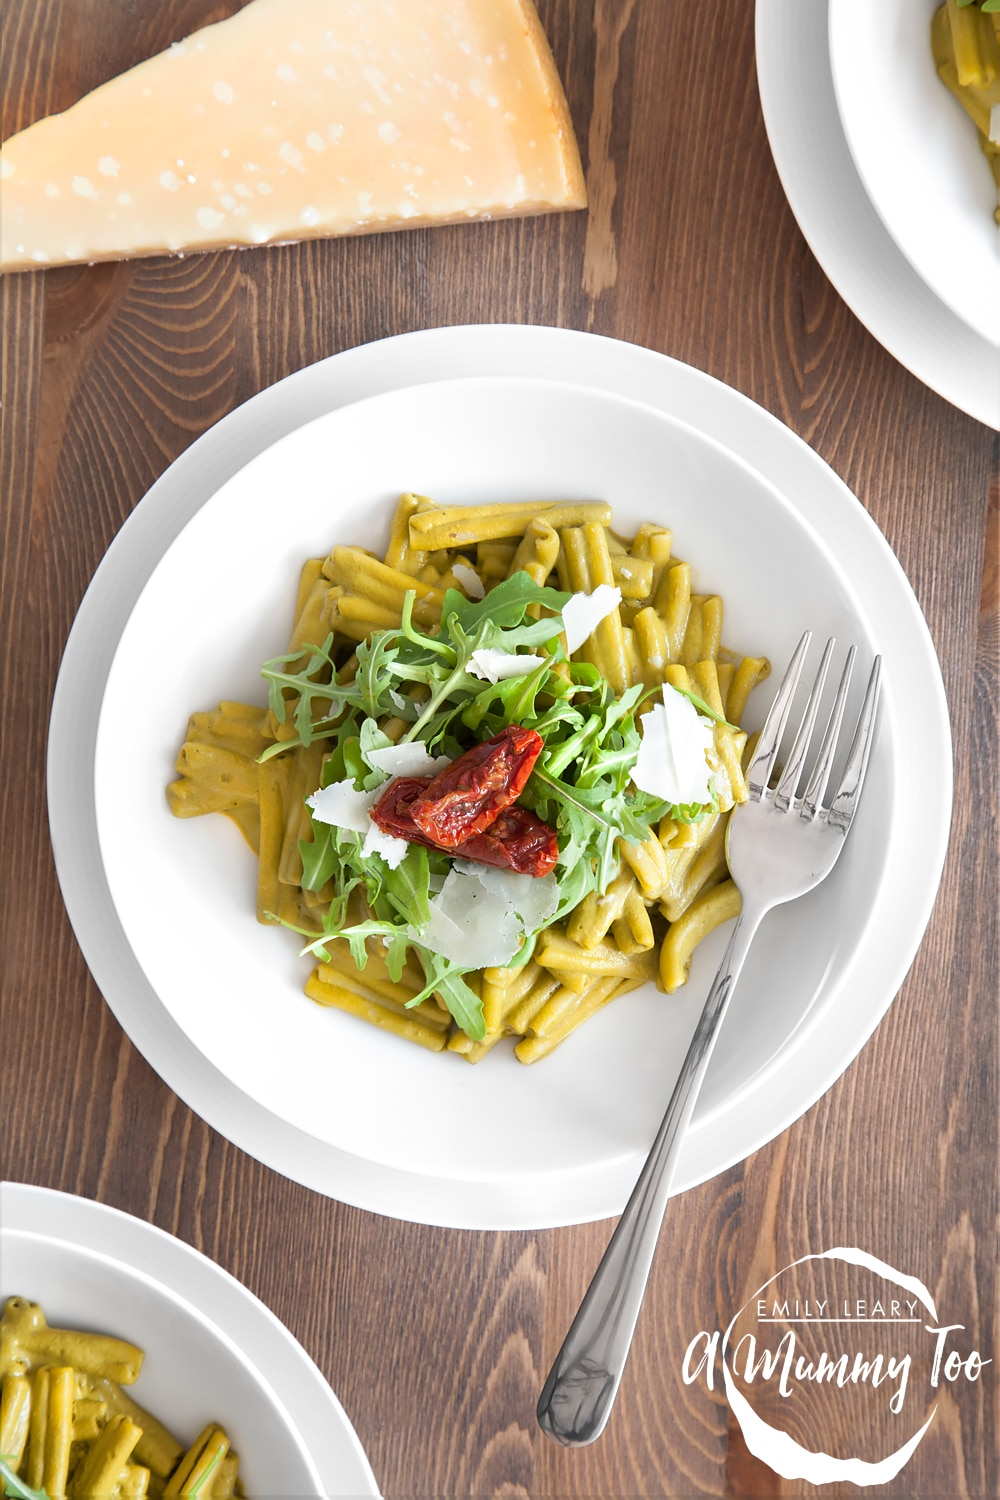 Creamy spinach pasta topped with tomato and rocket